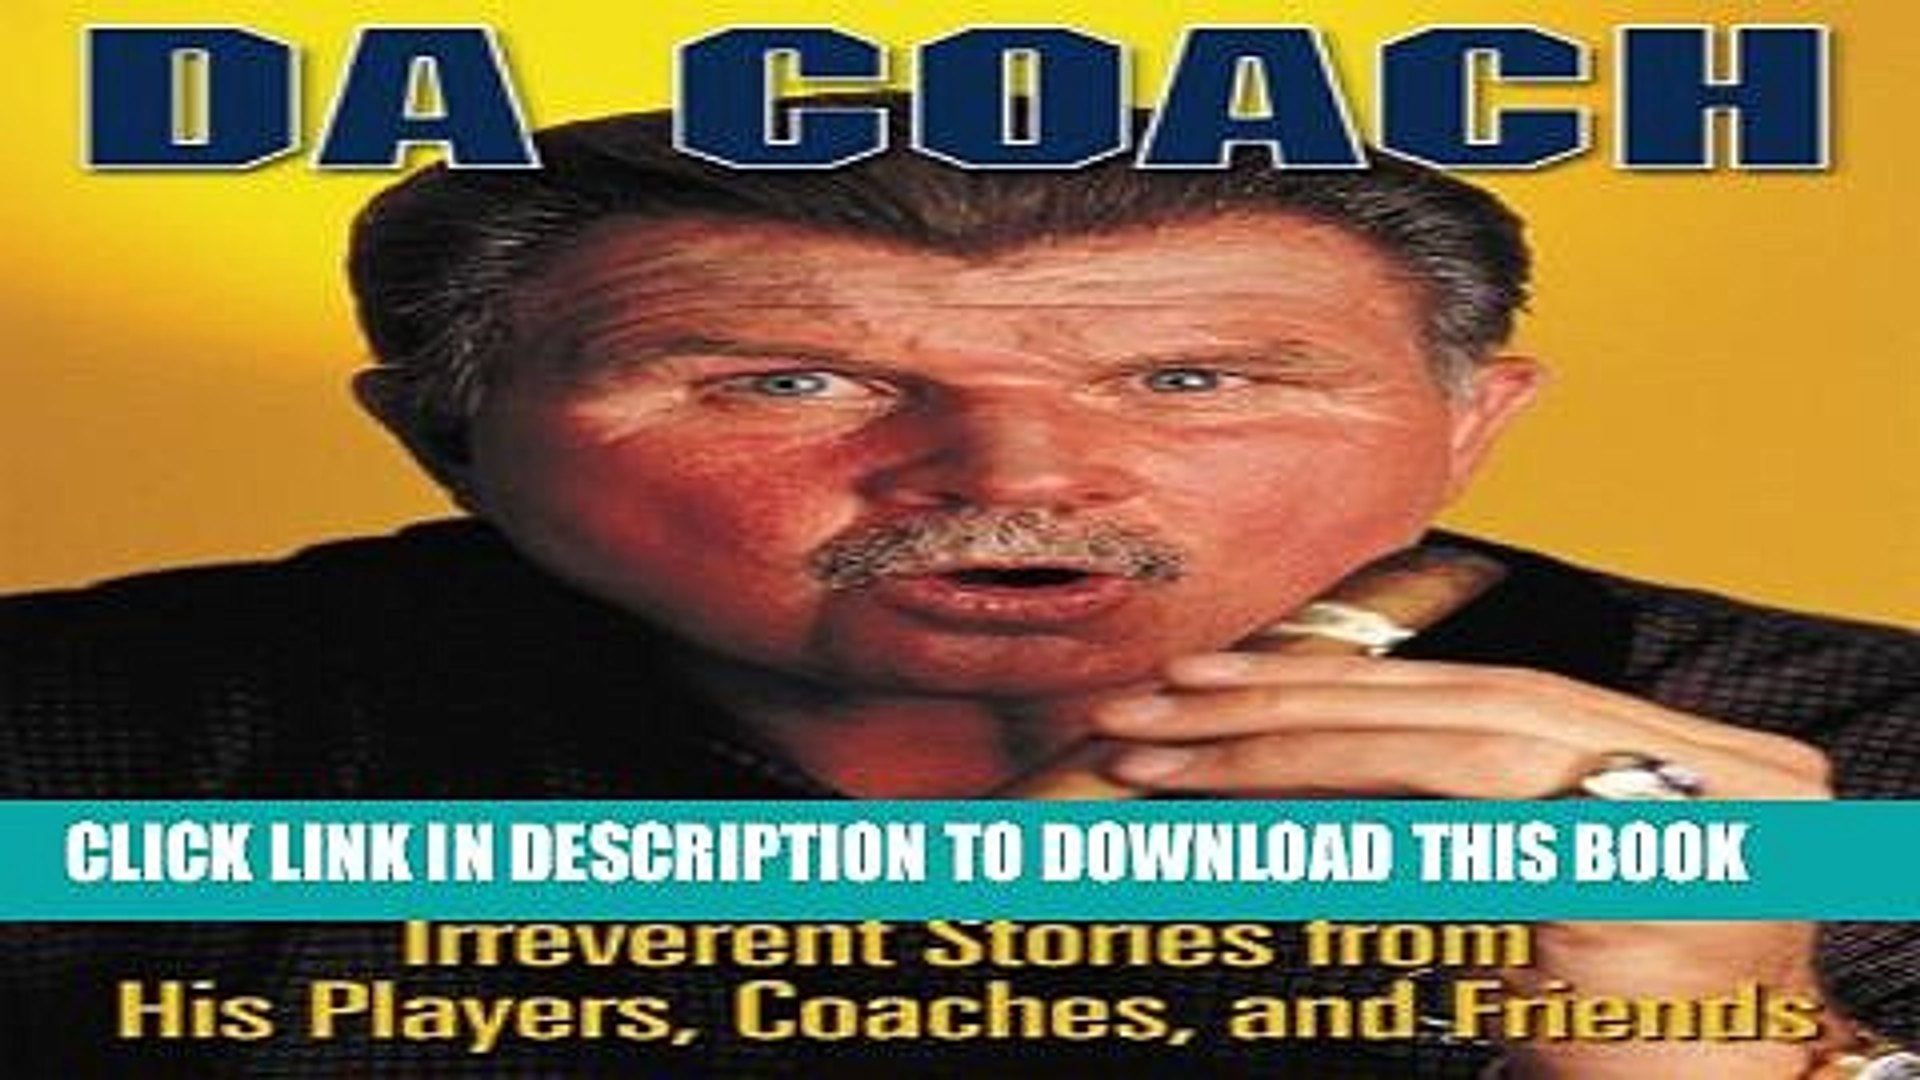 Da Coach: Irreverent Stories from His Players, Coaches, and Friends